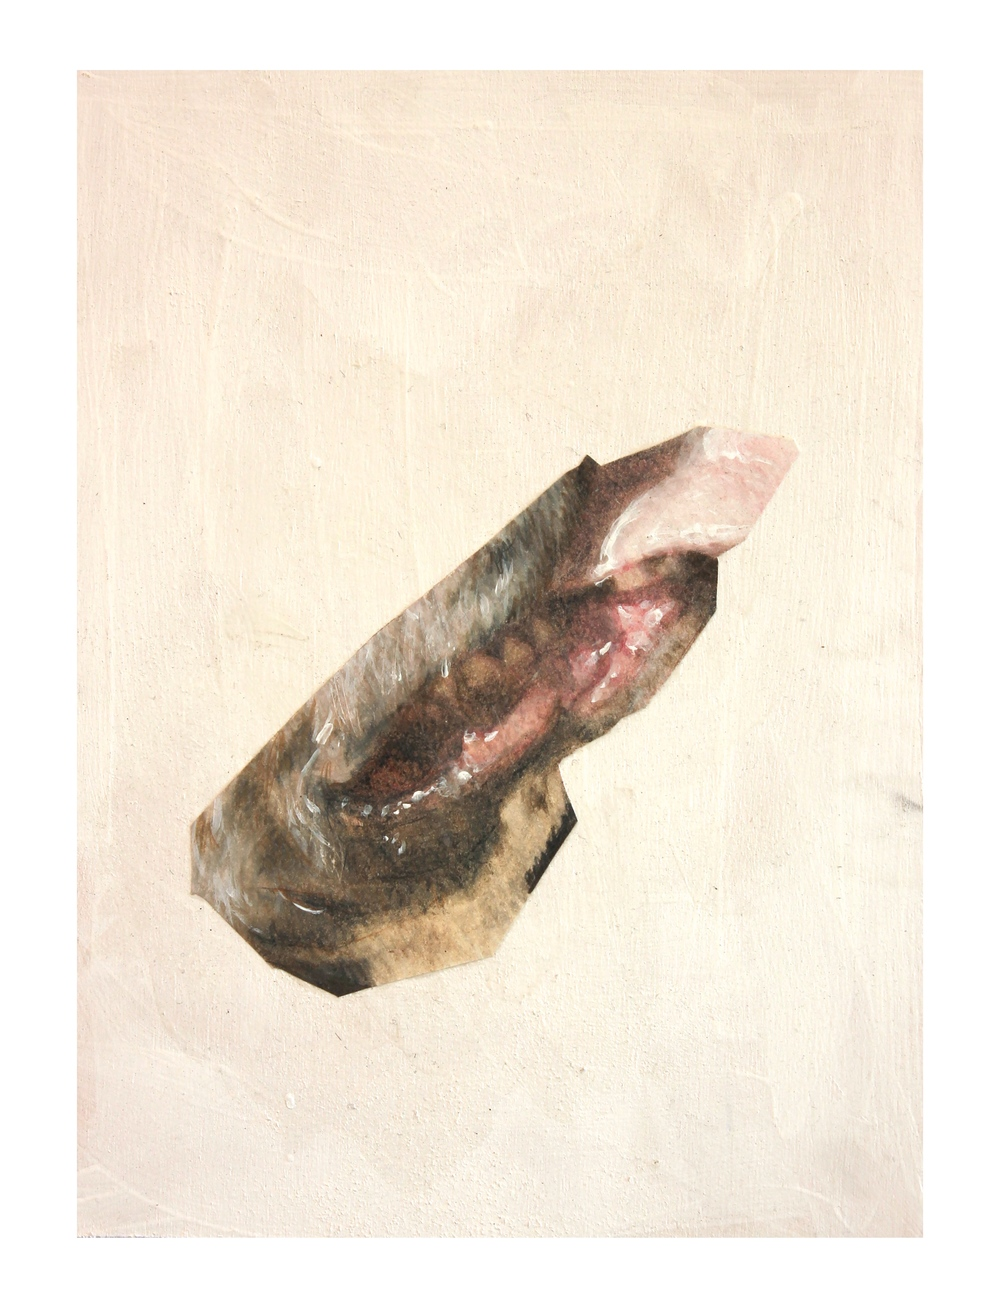 """Mouth"" (2015)<br>Colored Pencil, Acrylic, and Paper on Panel, 12 x 9 in."